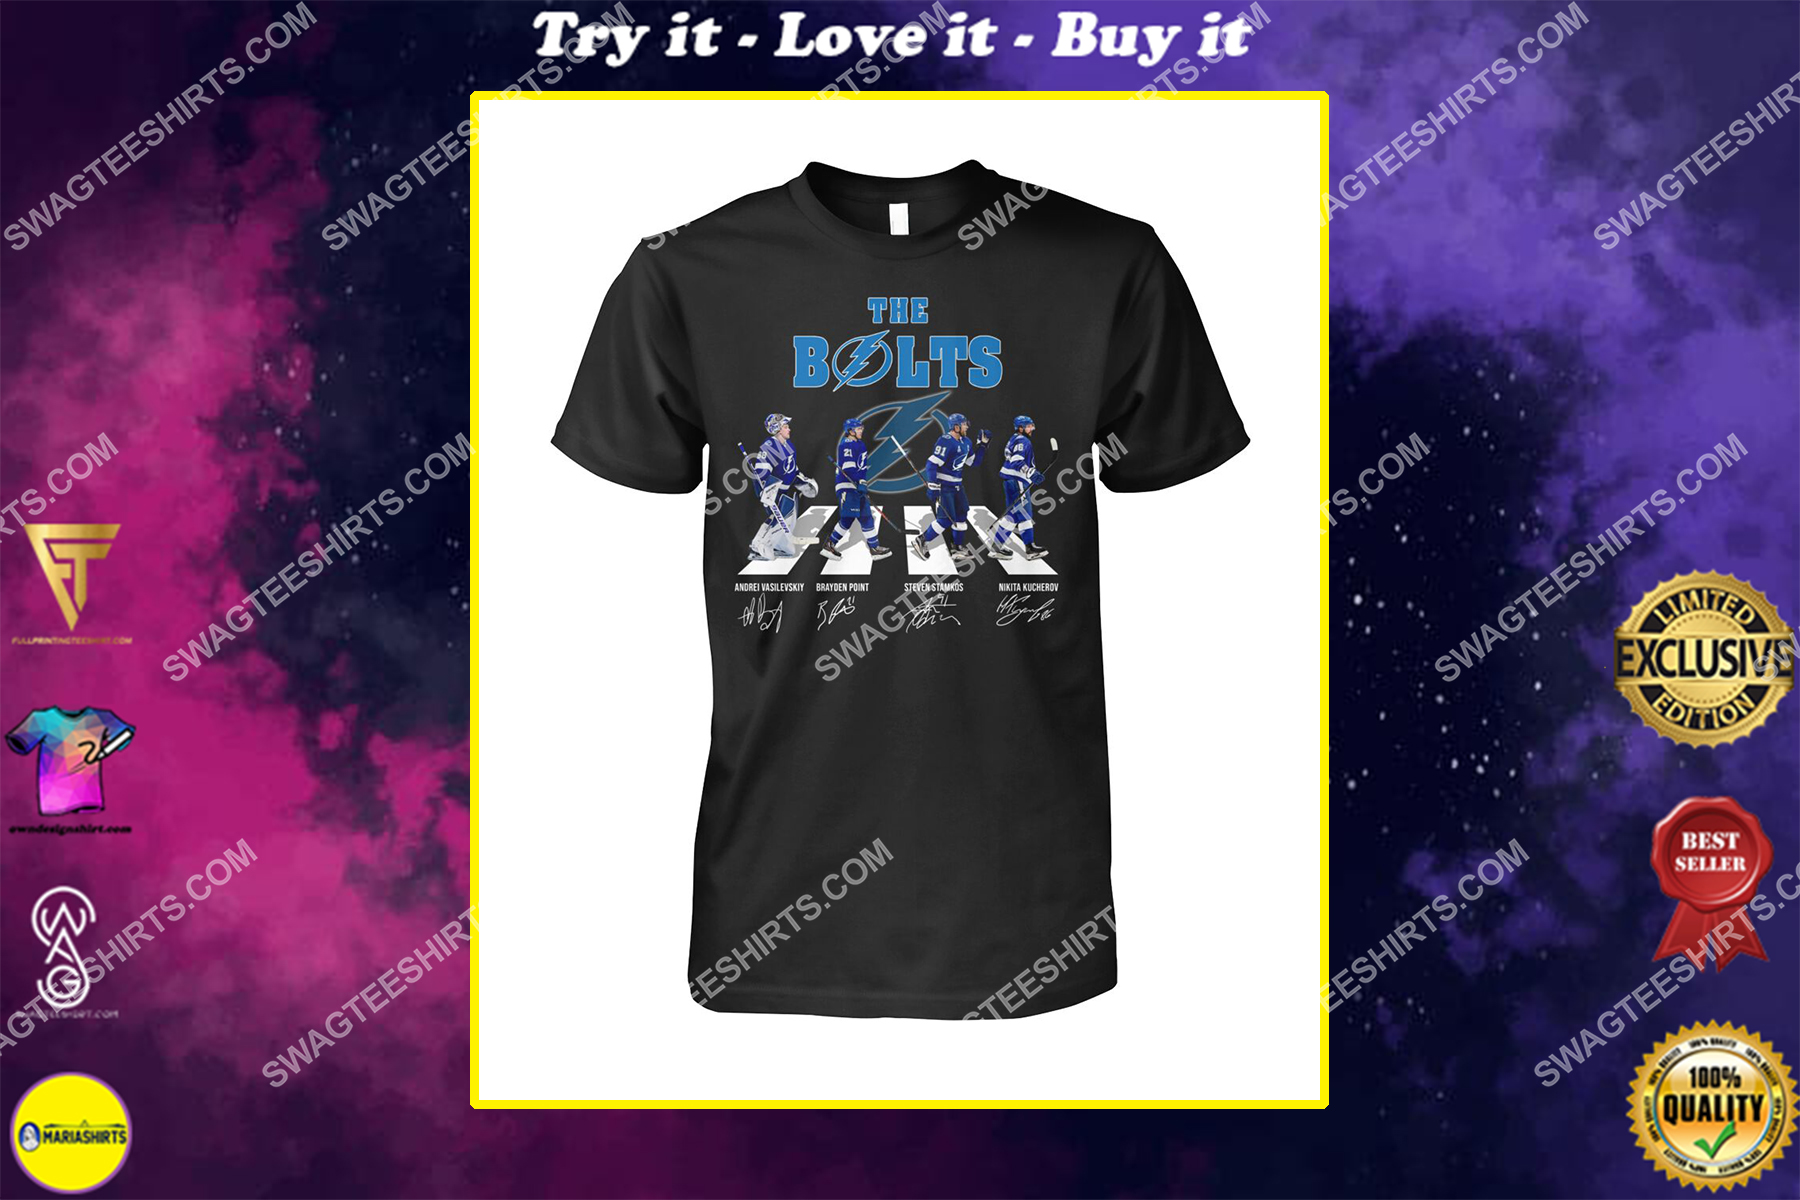 abbey road the bolts tampa bay lightning signatures shirt